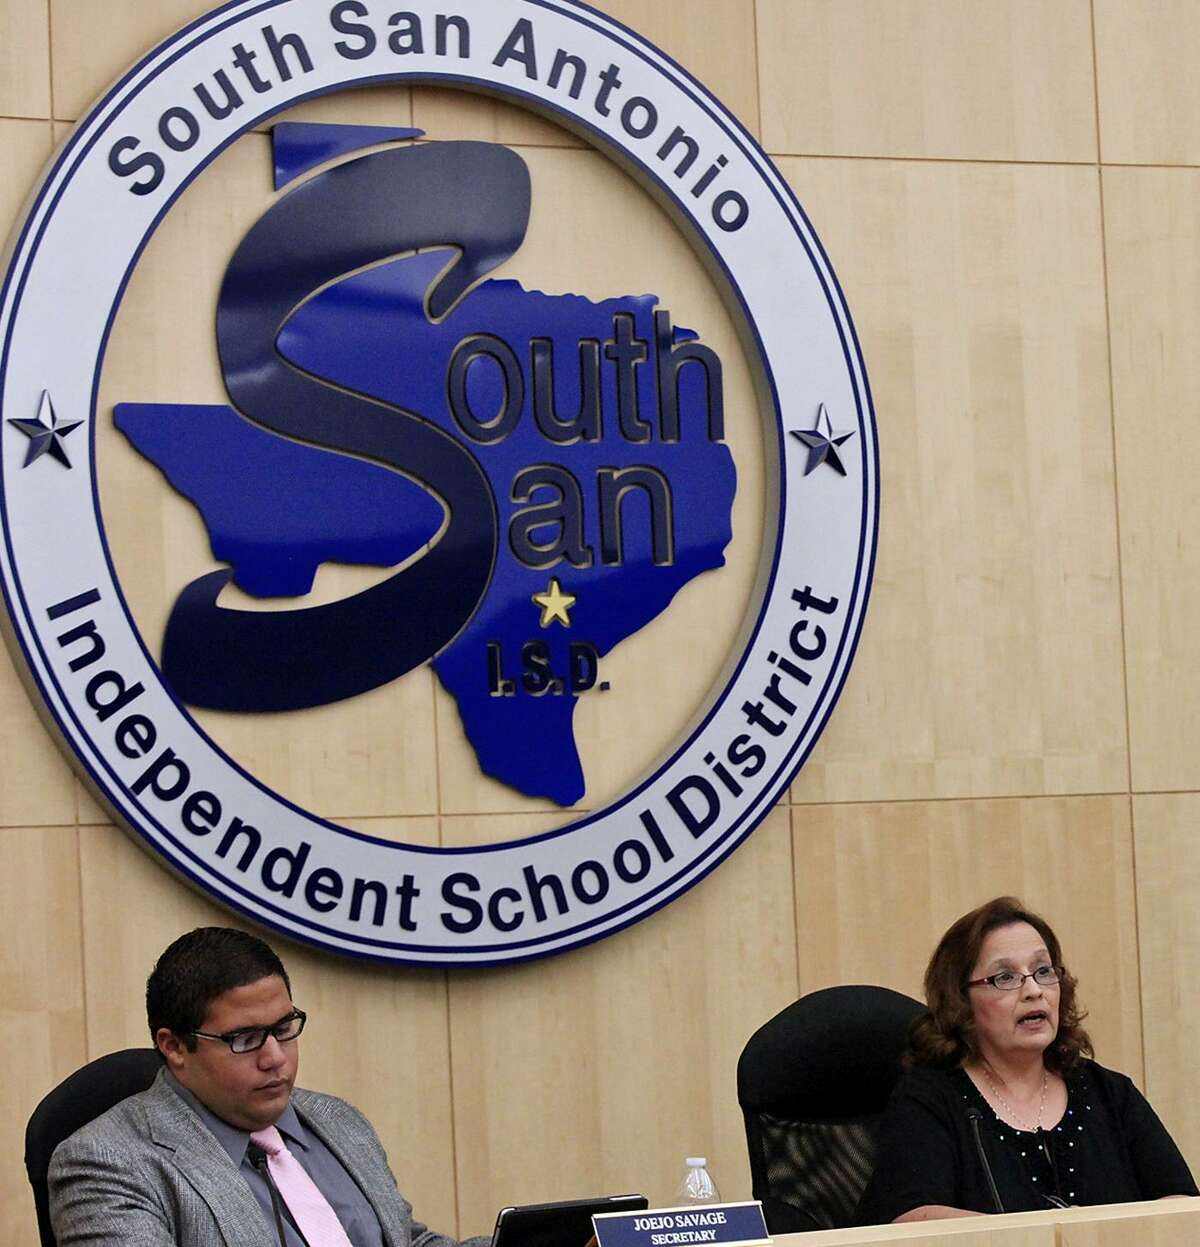 28. South San Antonio ISDFull-time teacher count:529.87 (includes full and part-time teachers)Average teacher base pay:$56,965Average base pay for all employees:$46,944